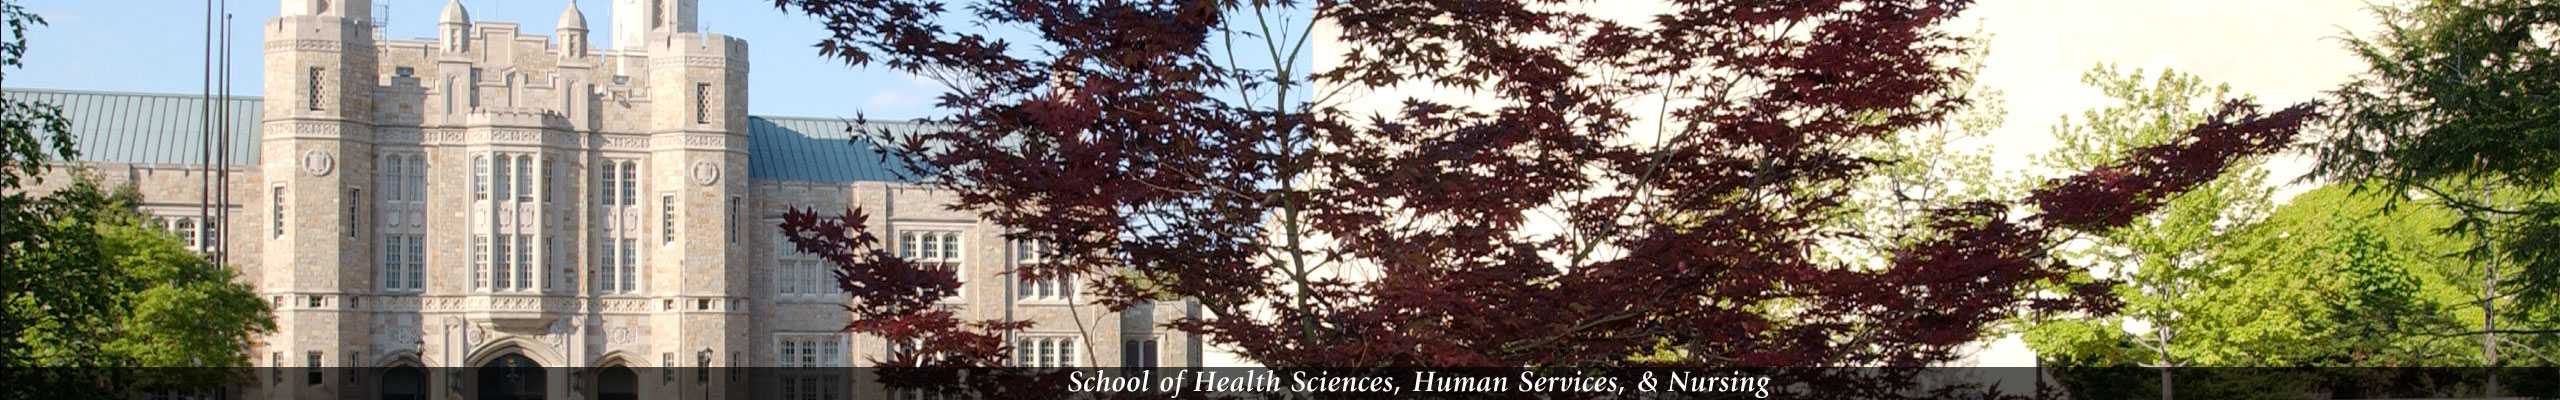 Health Sciences, Human Services, Nursing